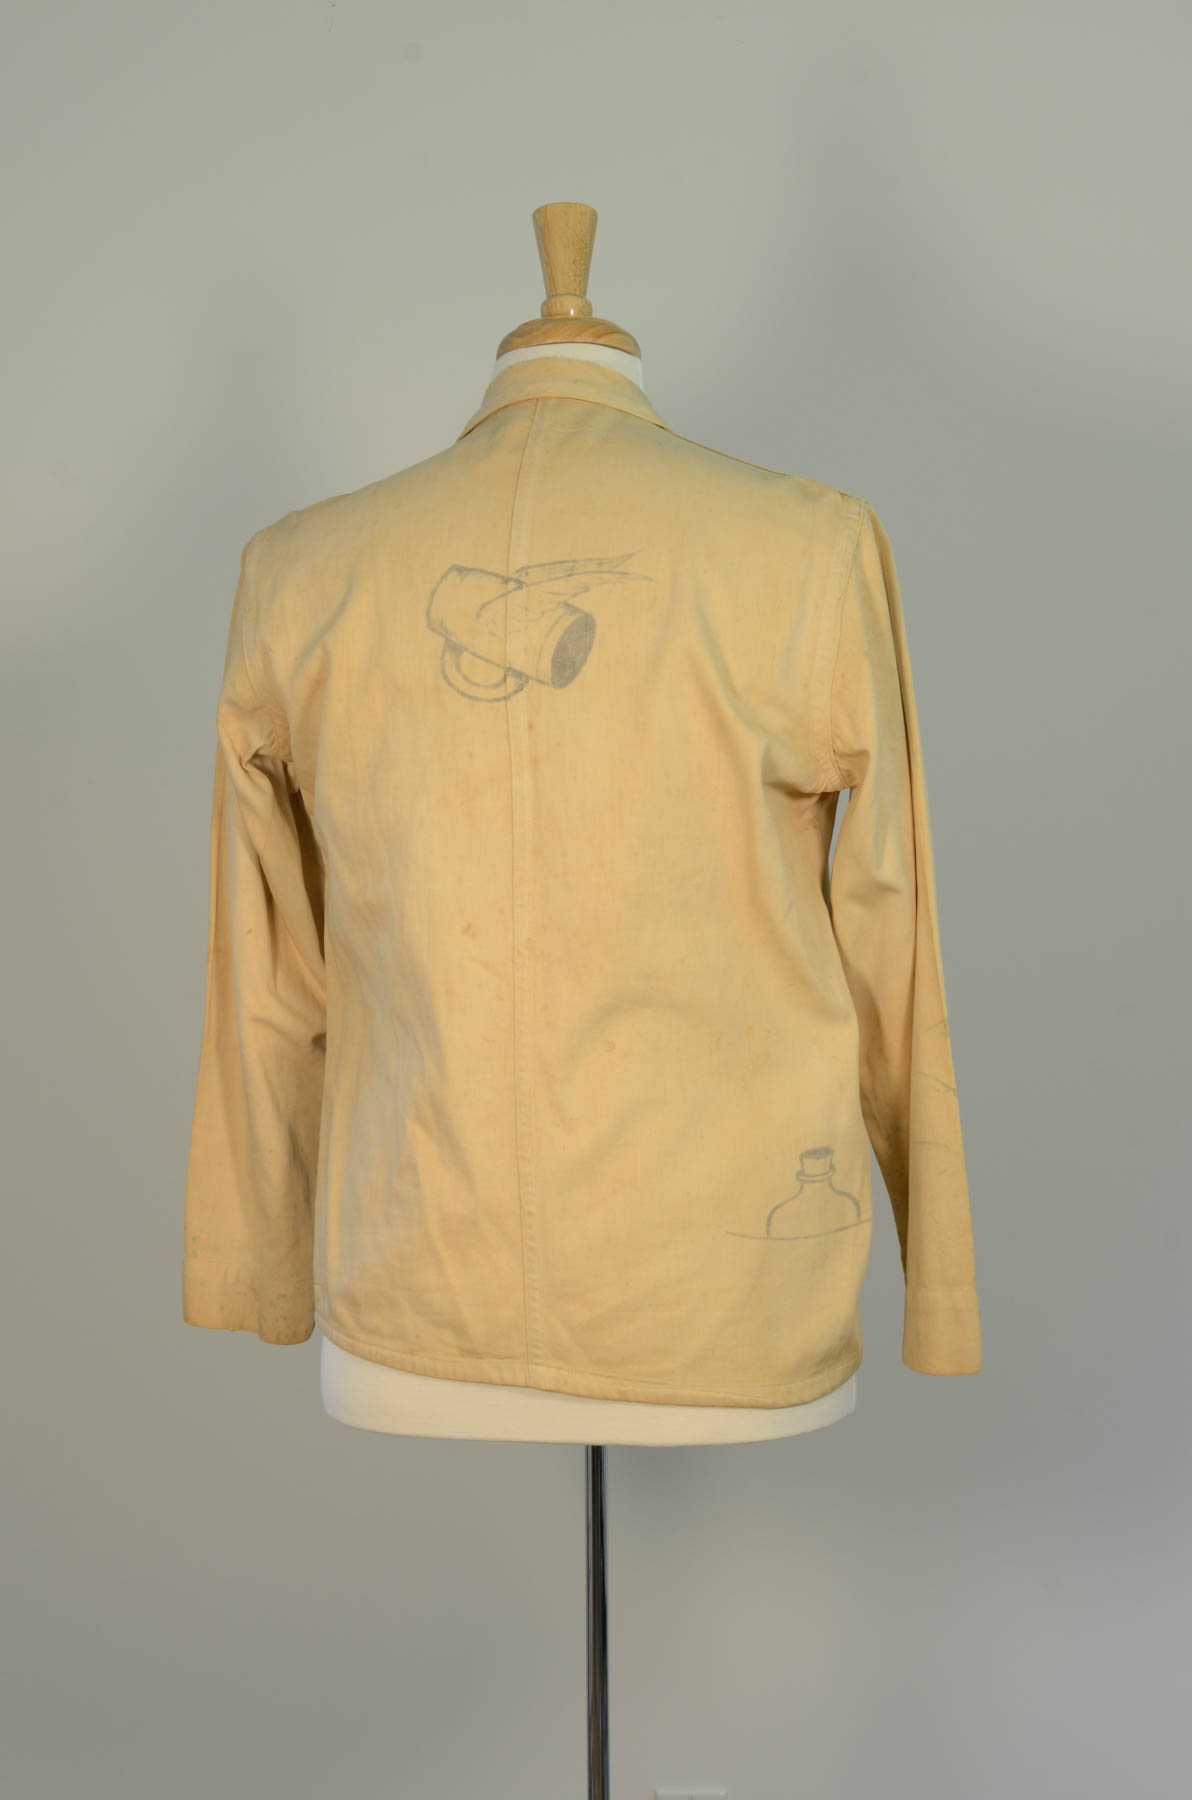 Beer Jacket 1922 Rear